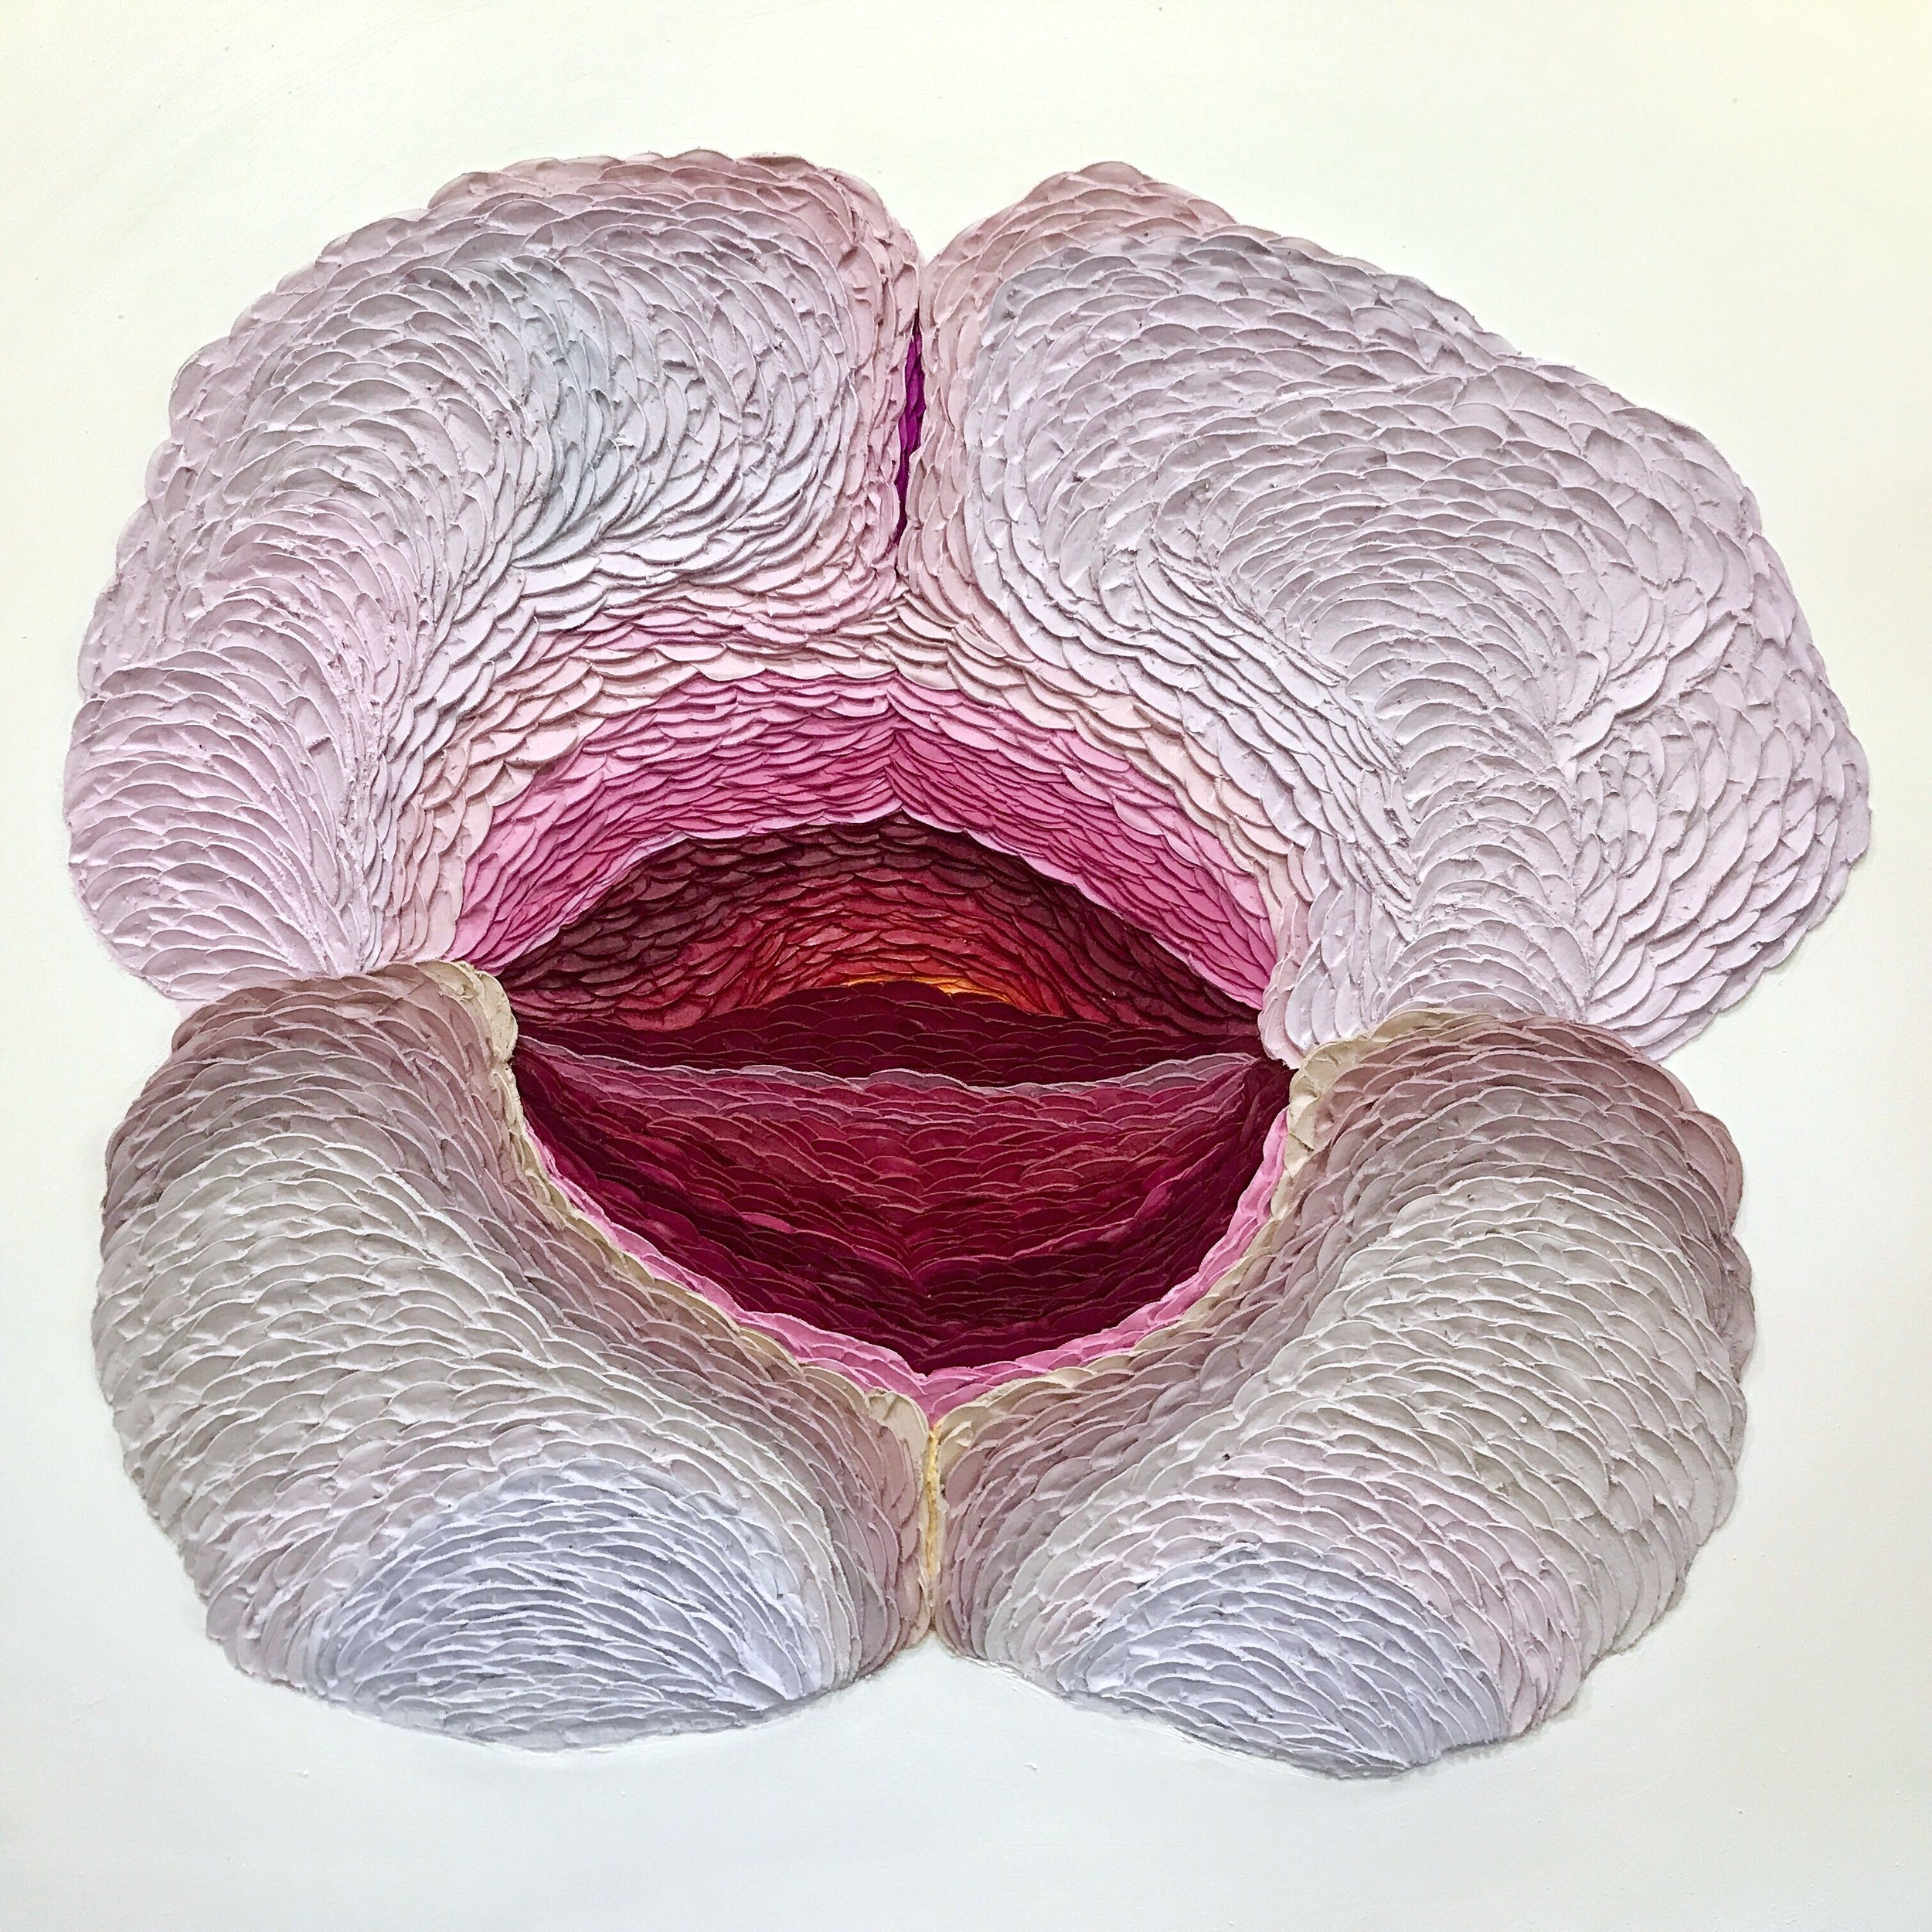 Bergin_Opening Flower_36x36_oil,ash,marble dust (1).jpg